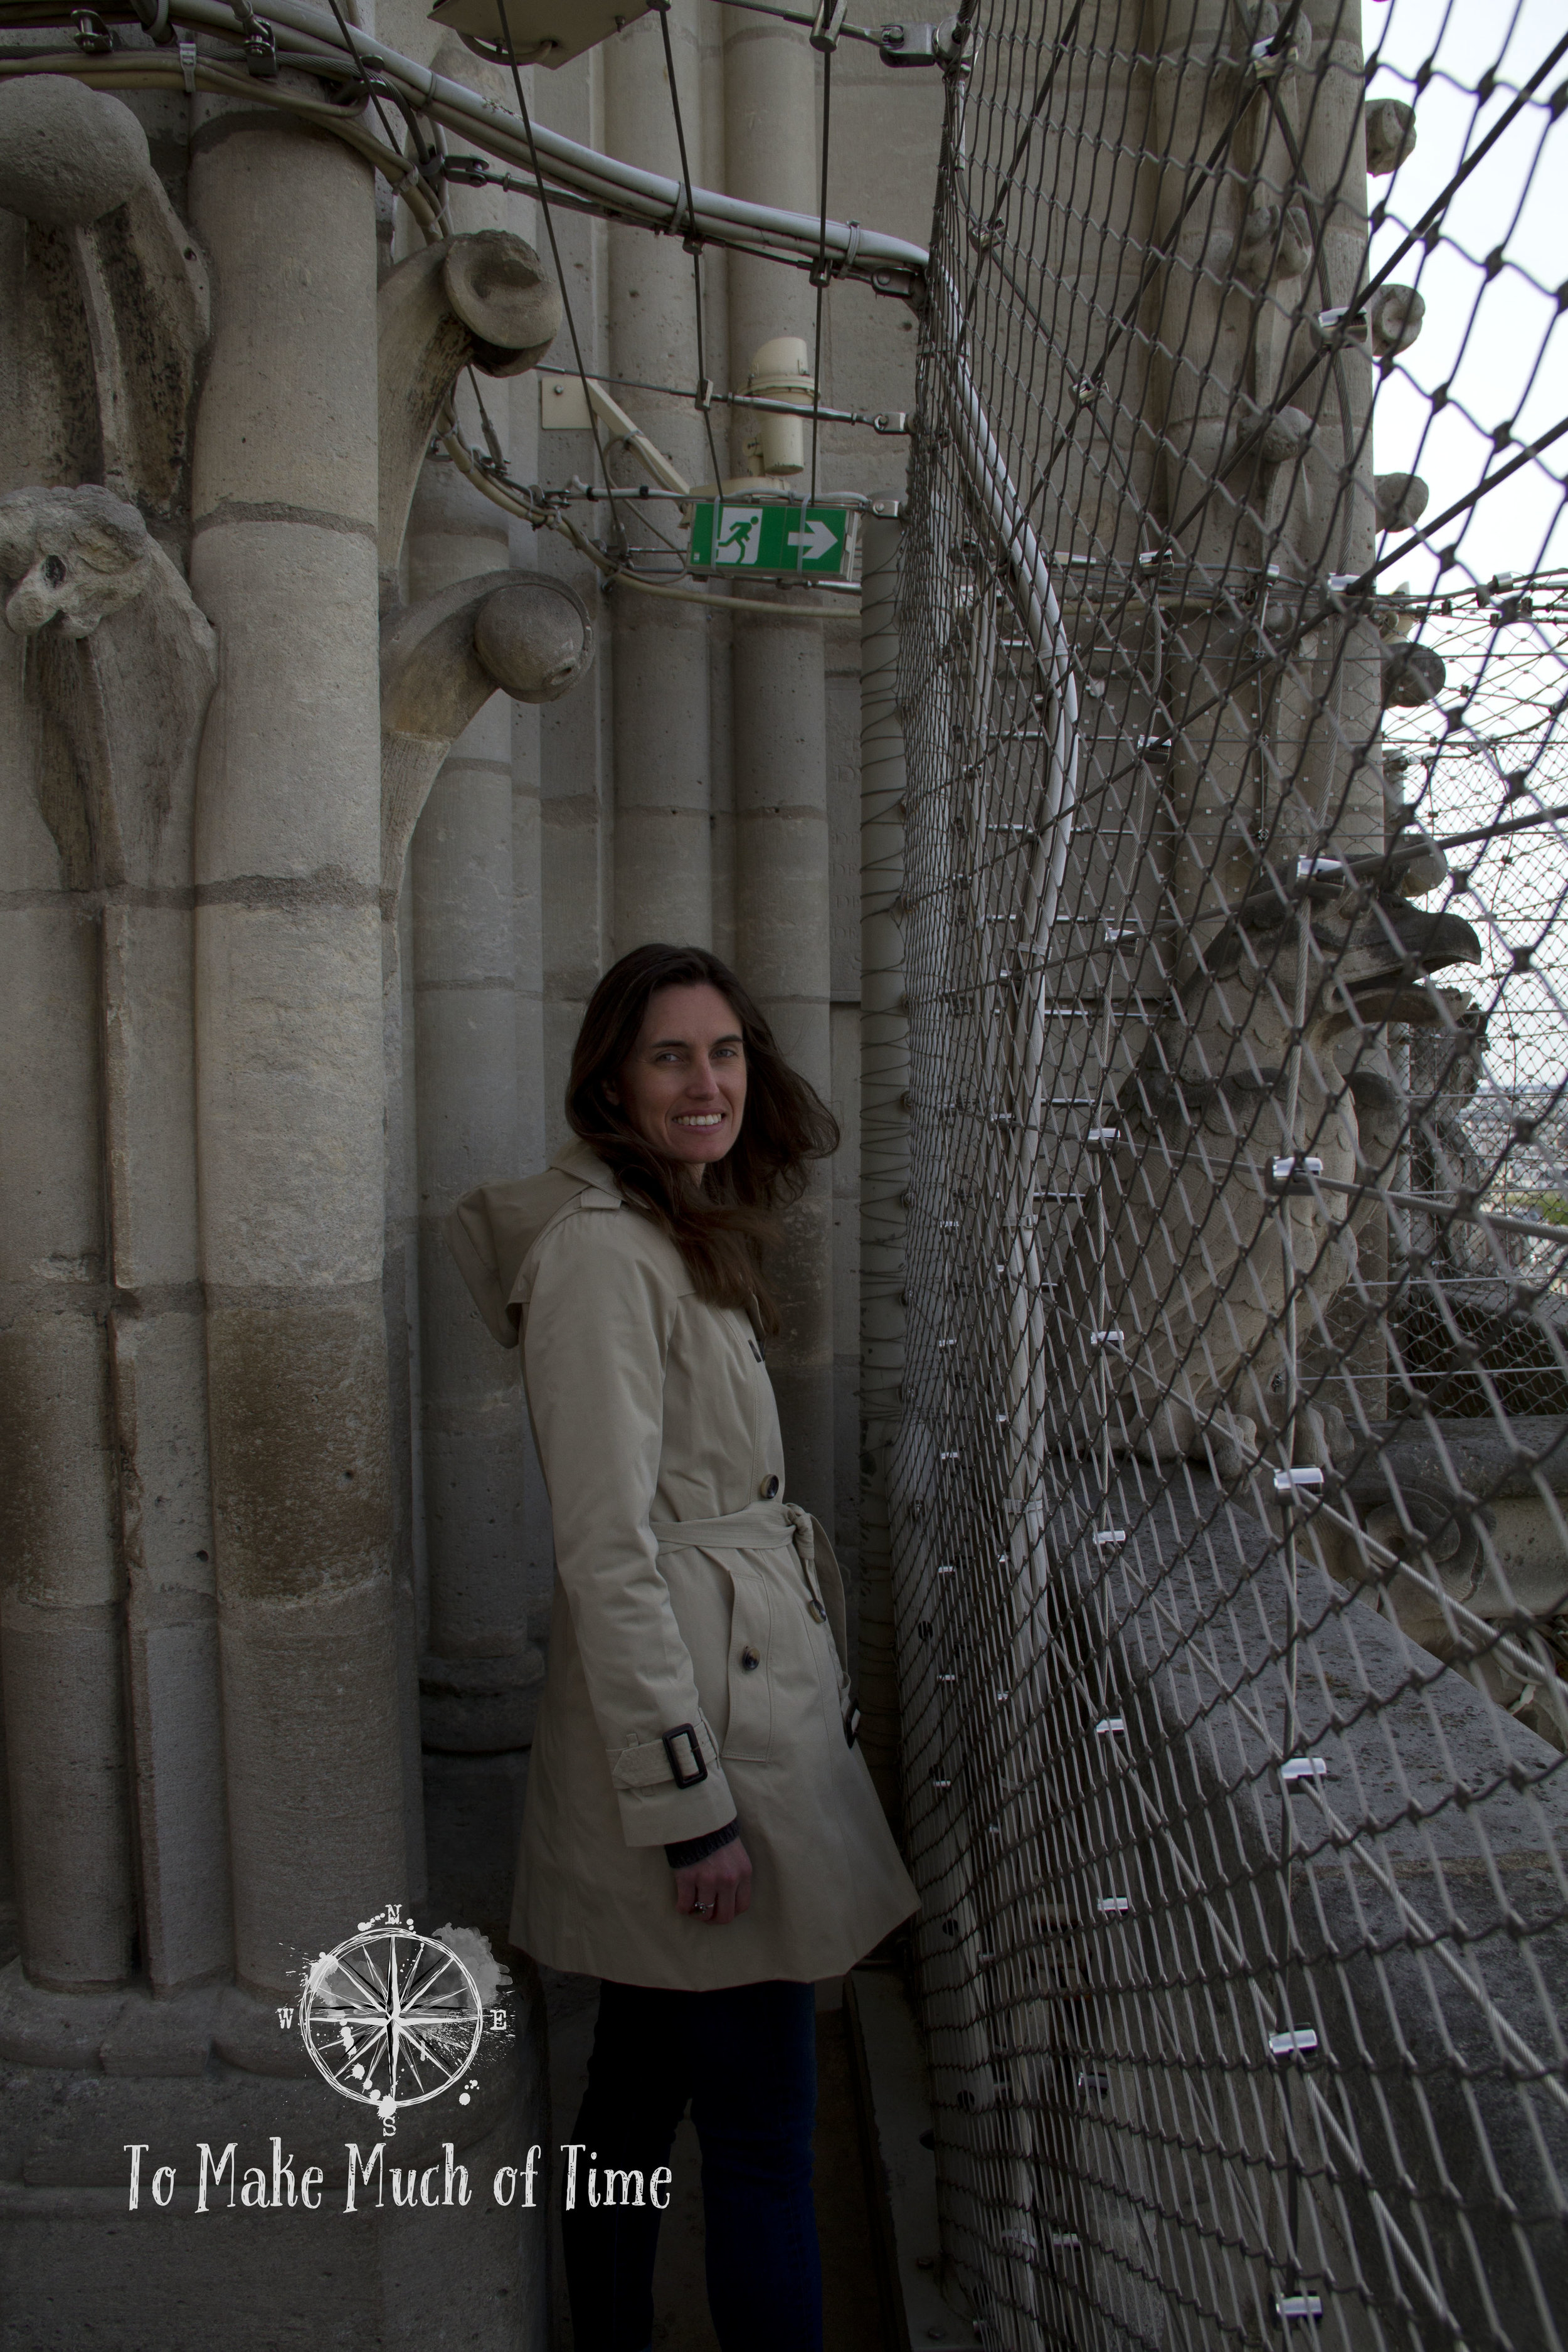 If you have a fear of heights or tight spaces you might want to think twice about ascending to the top of Notre-Dame. It can definitely be colder and breezier, too - our visit was fairly chilly!